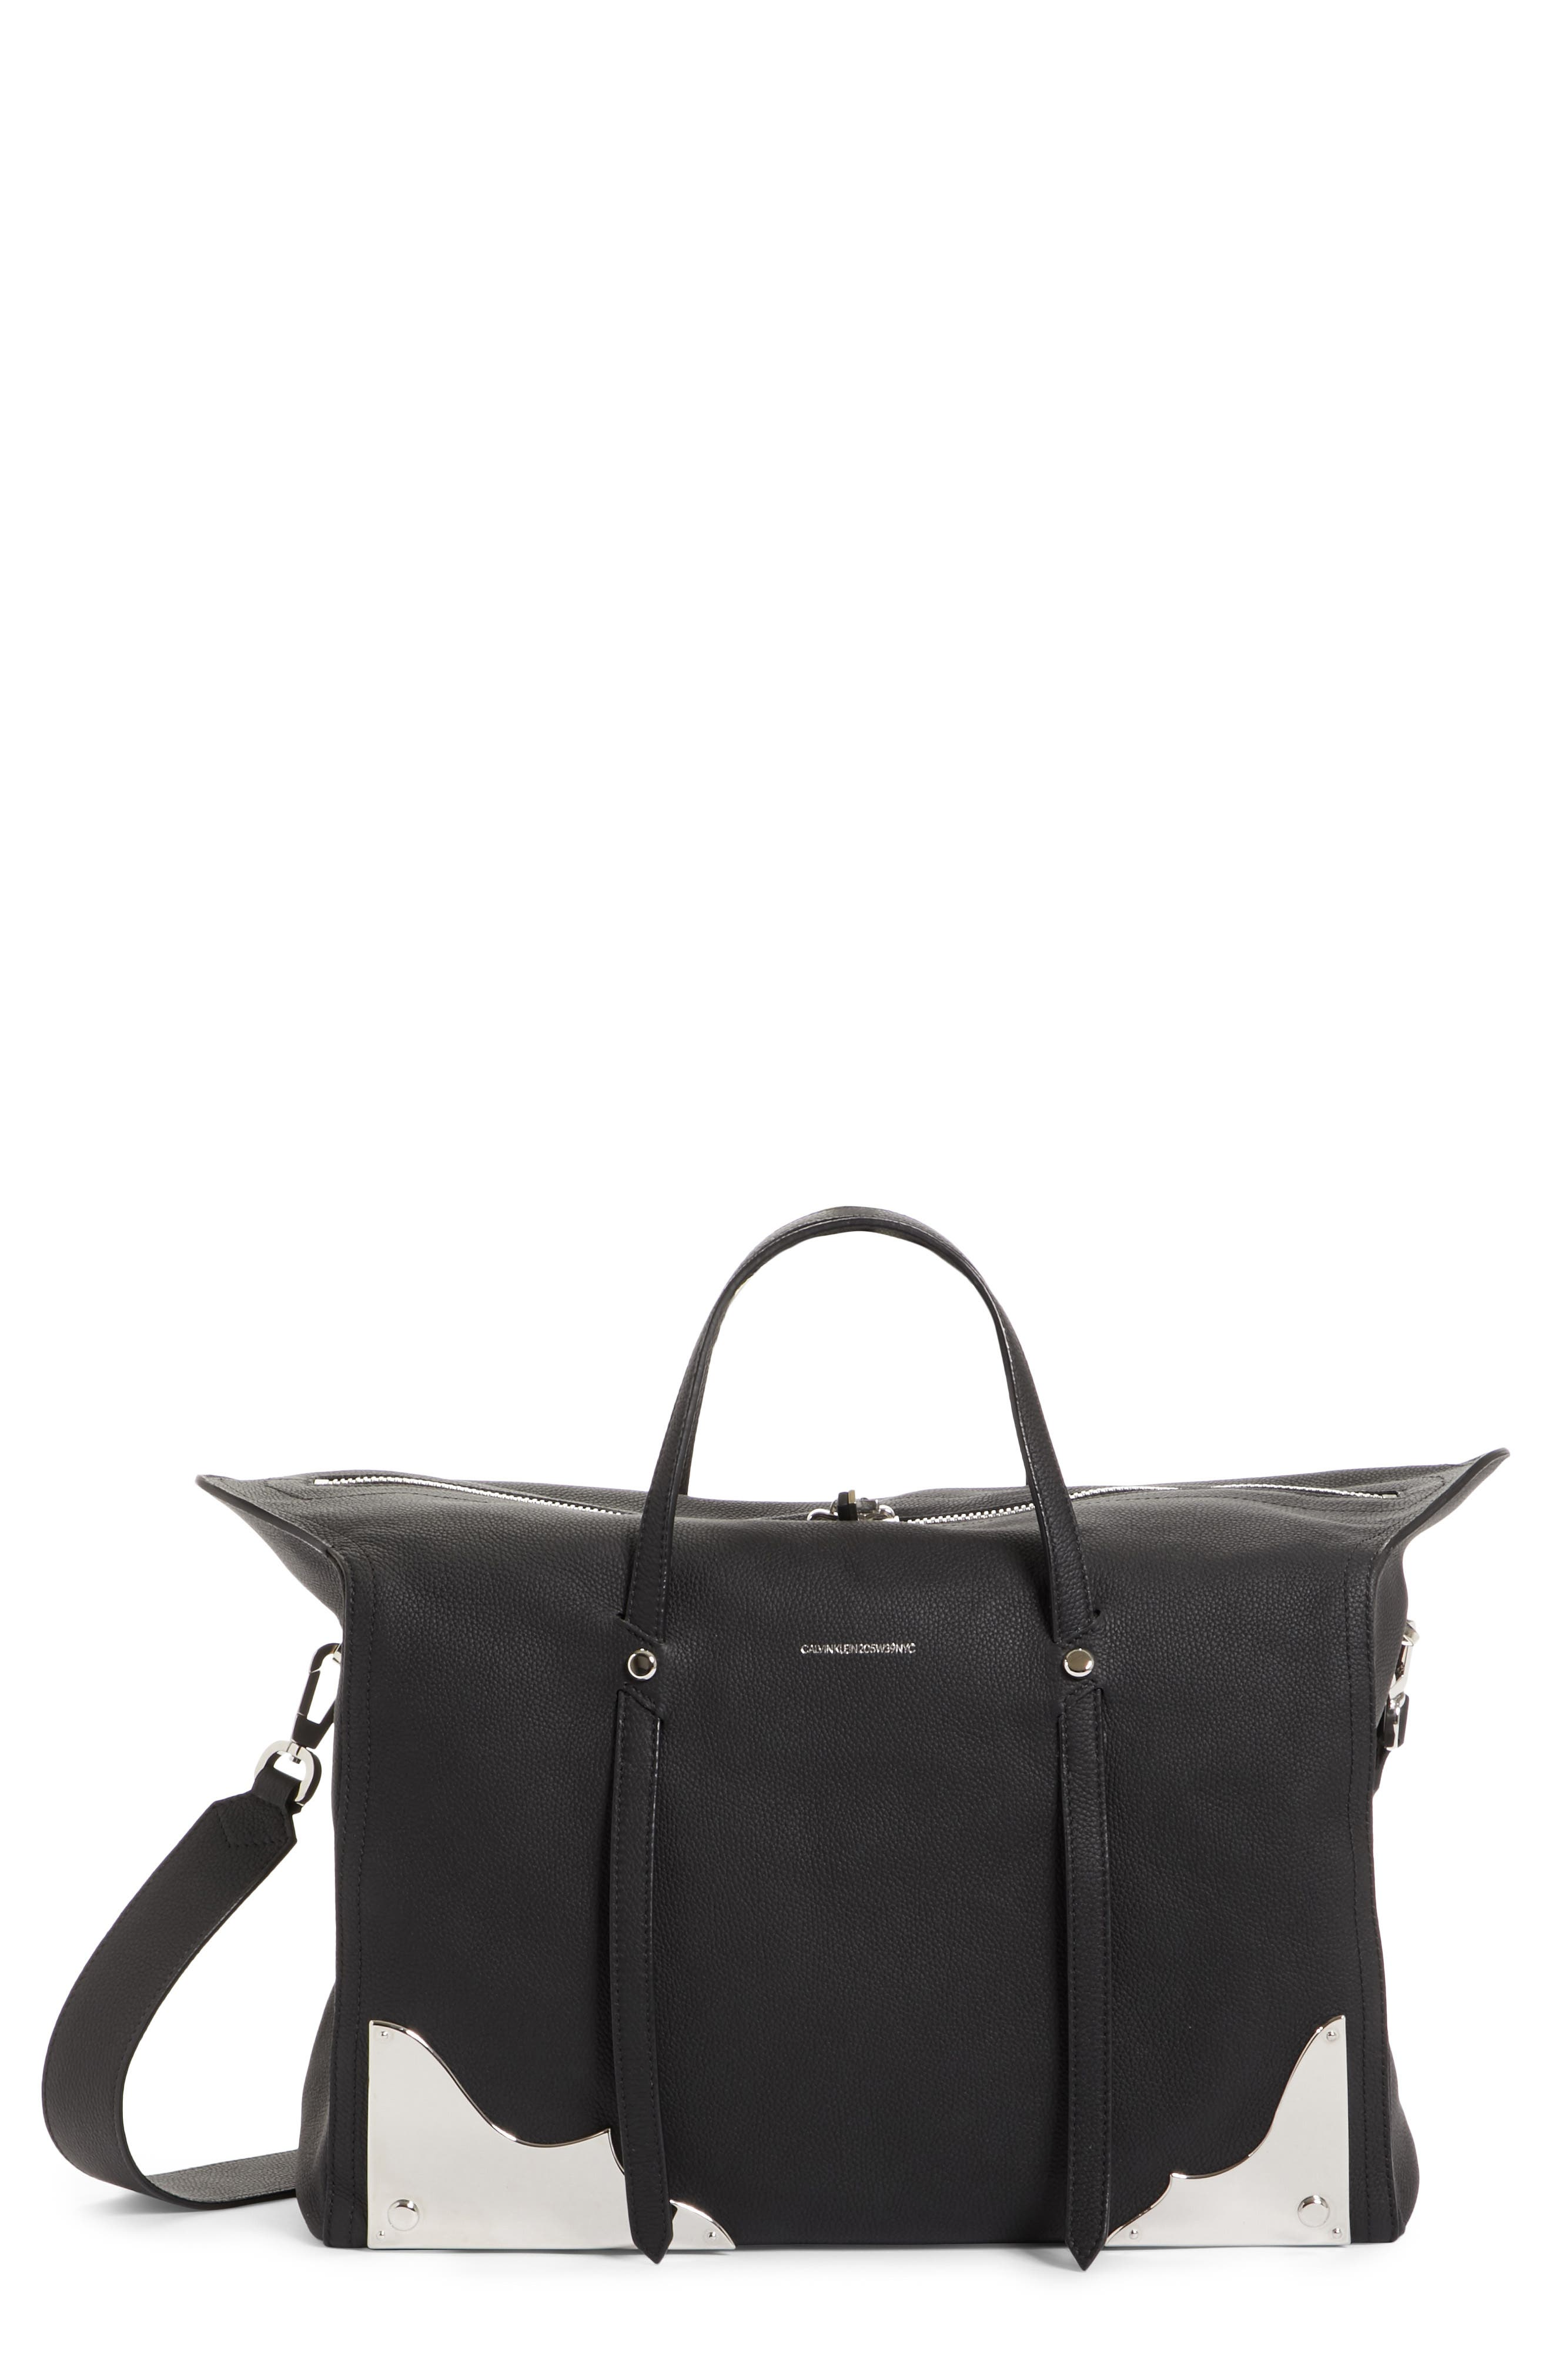 Main Image - Calvin Klein 205W395NYC Medium Calfskin Satchel